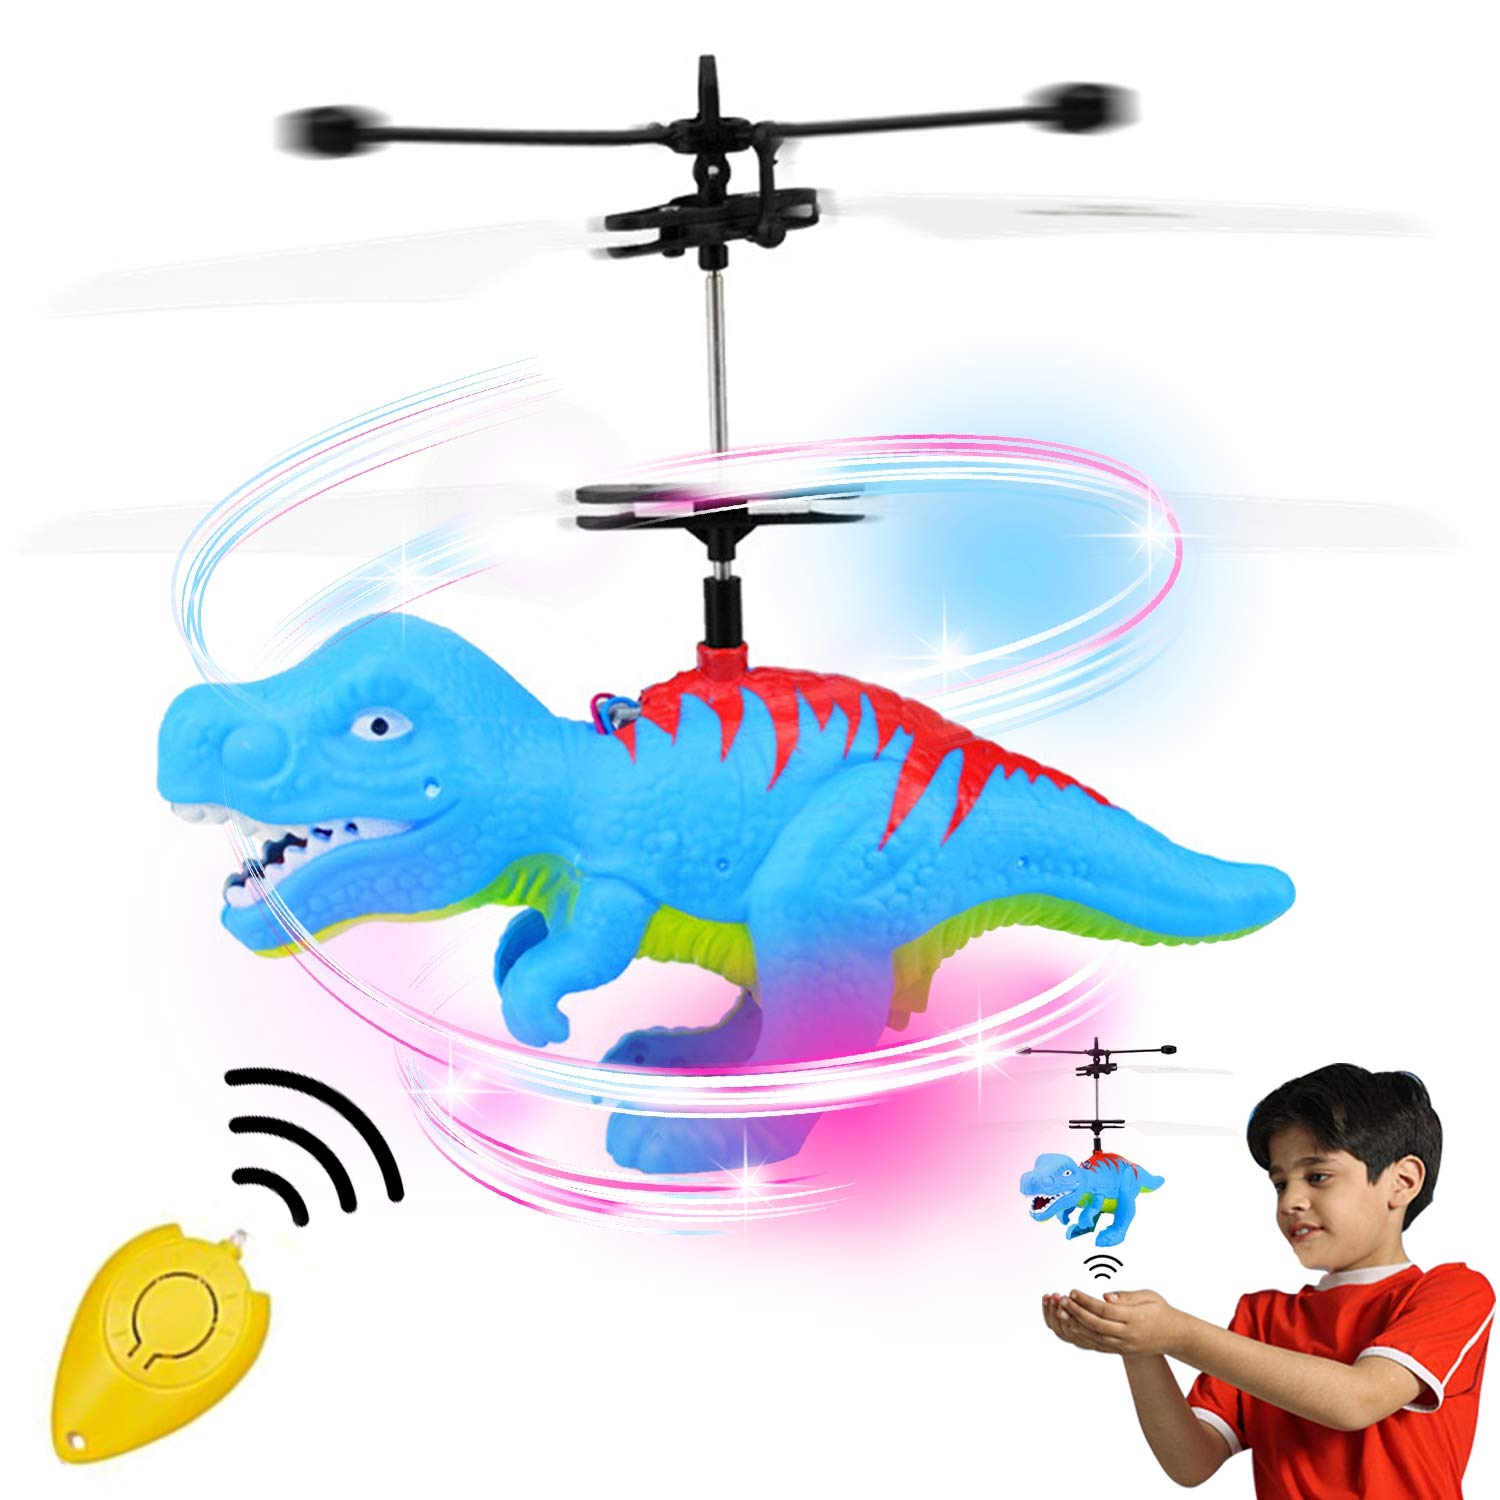 Flying Ball, Kids Toys Hand Control Helicopter Infrared Induction Drone Magic RC Flying Light Up Toys Indoor and Outdoor Games Fun Gadgets for Boys Girls Kids Teenagers Gifts (Flying Dinosaur) by GreaSmart